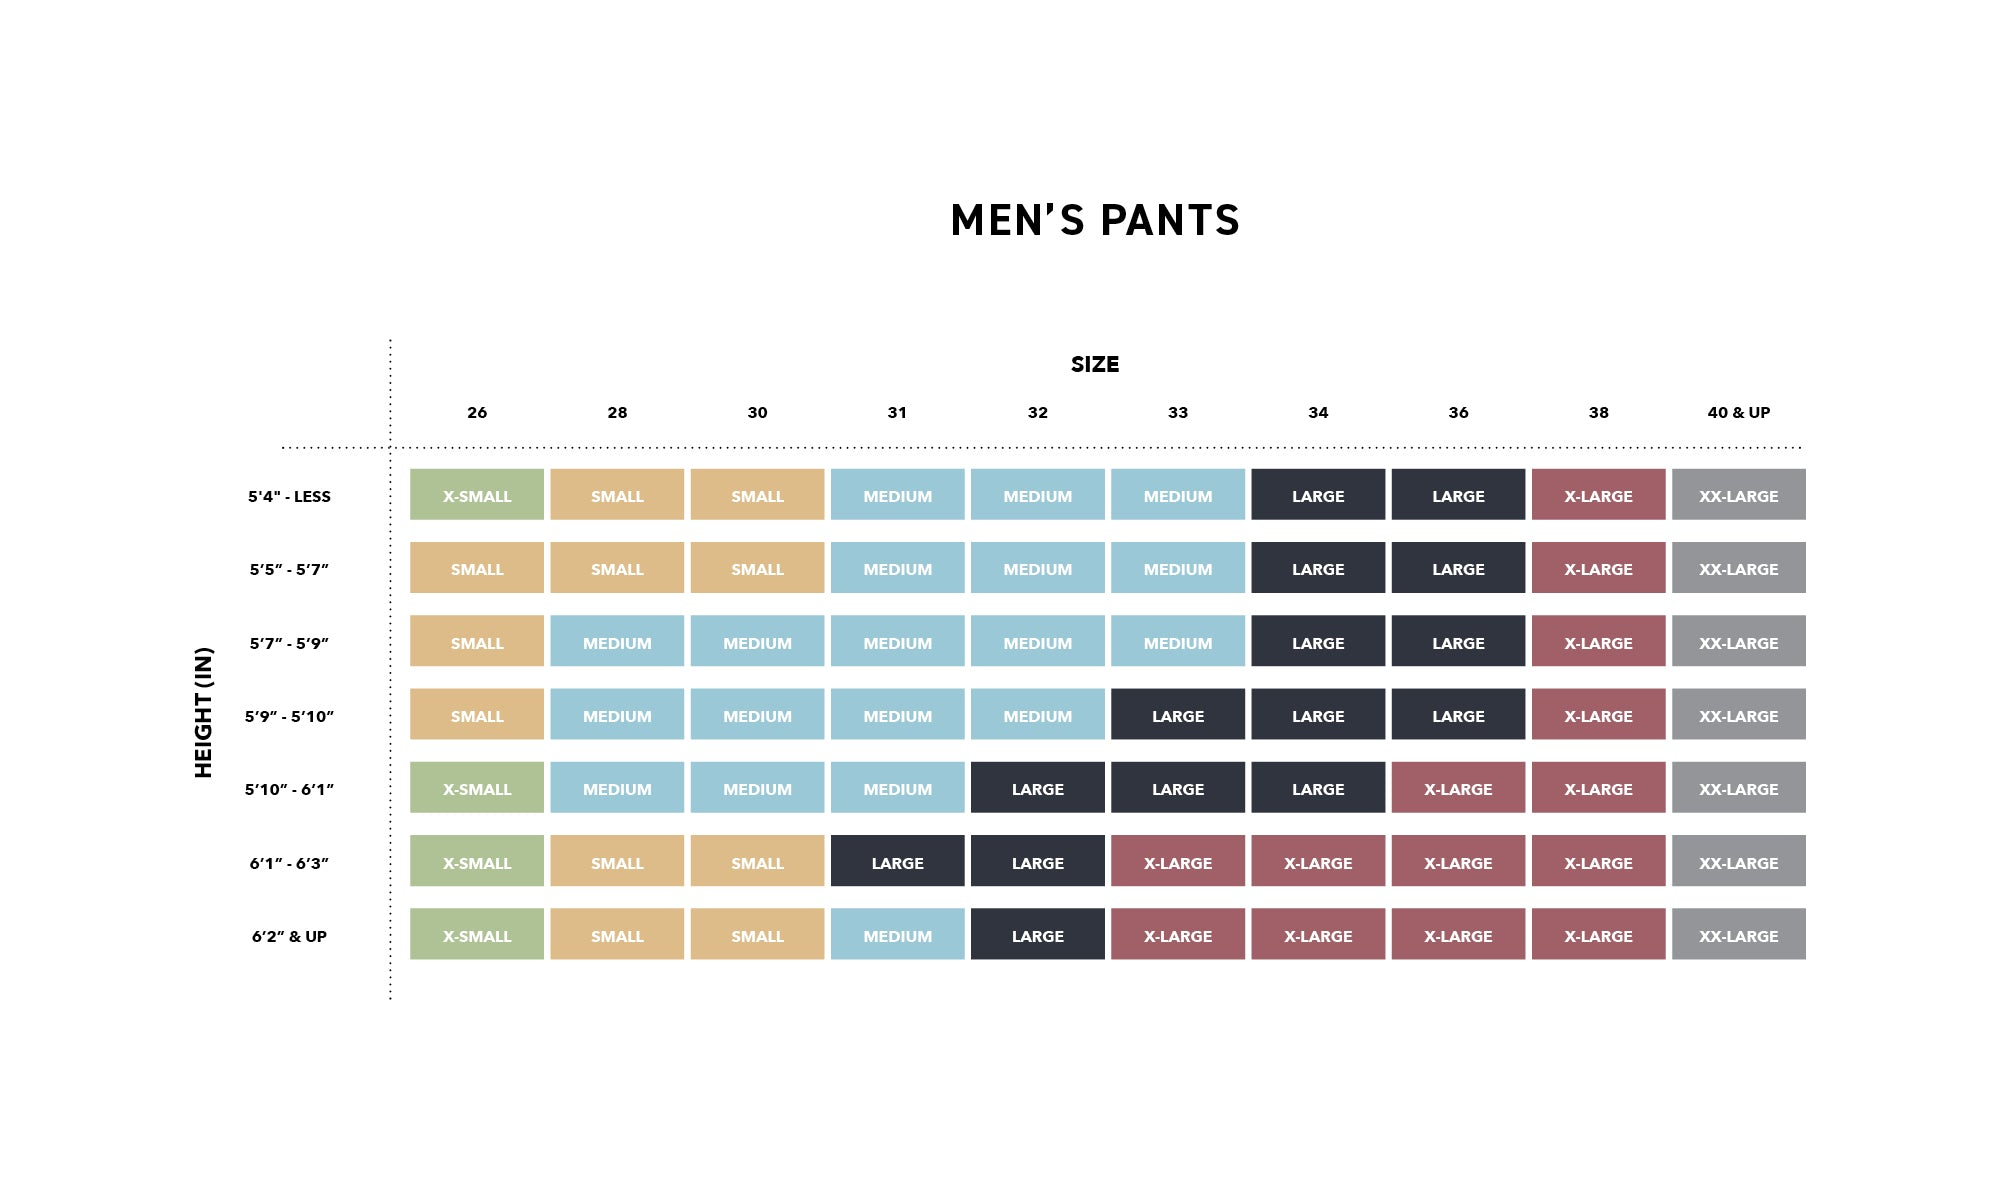 MENS_PANTS_SIZE.jpg